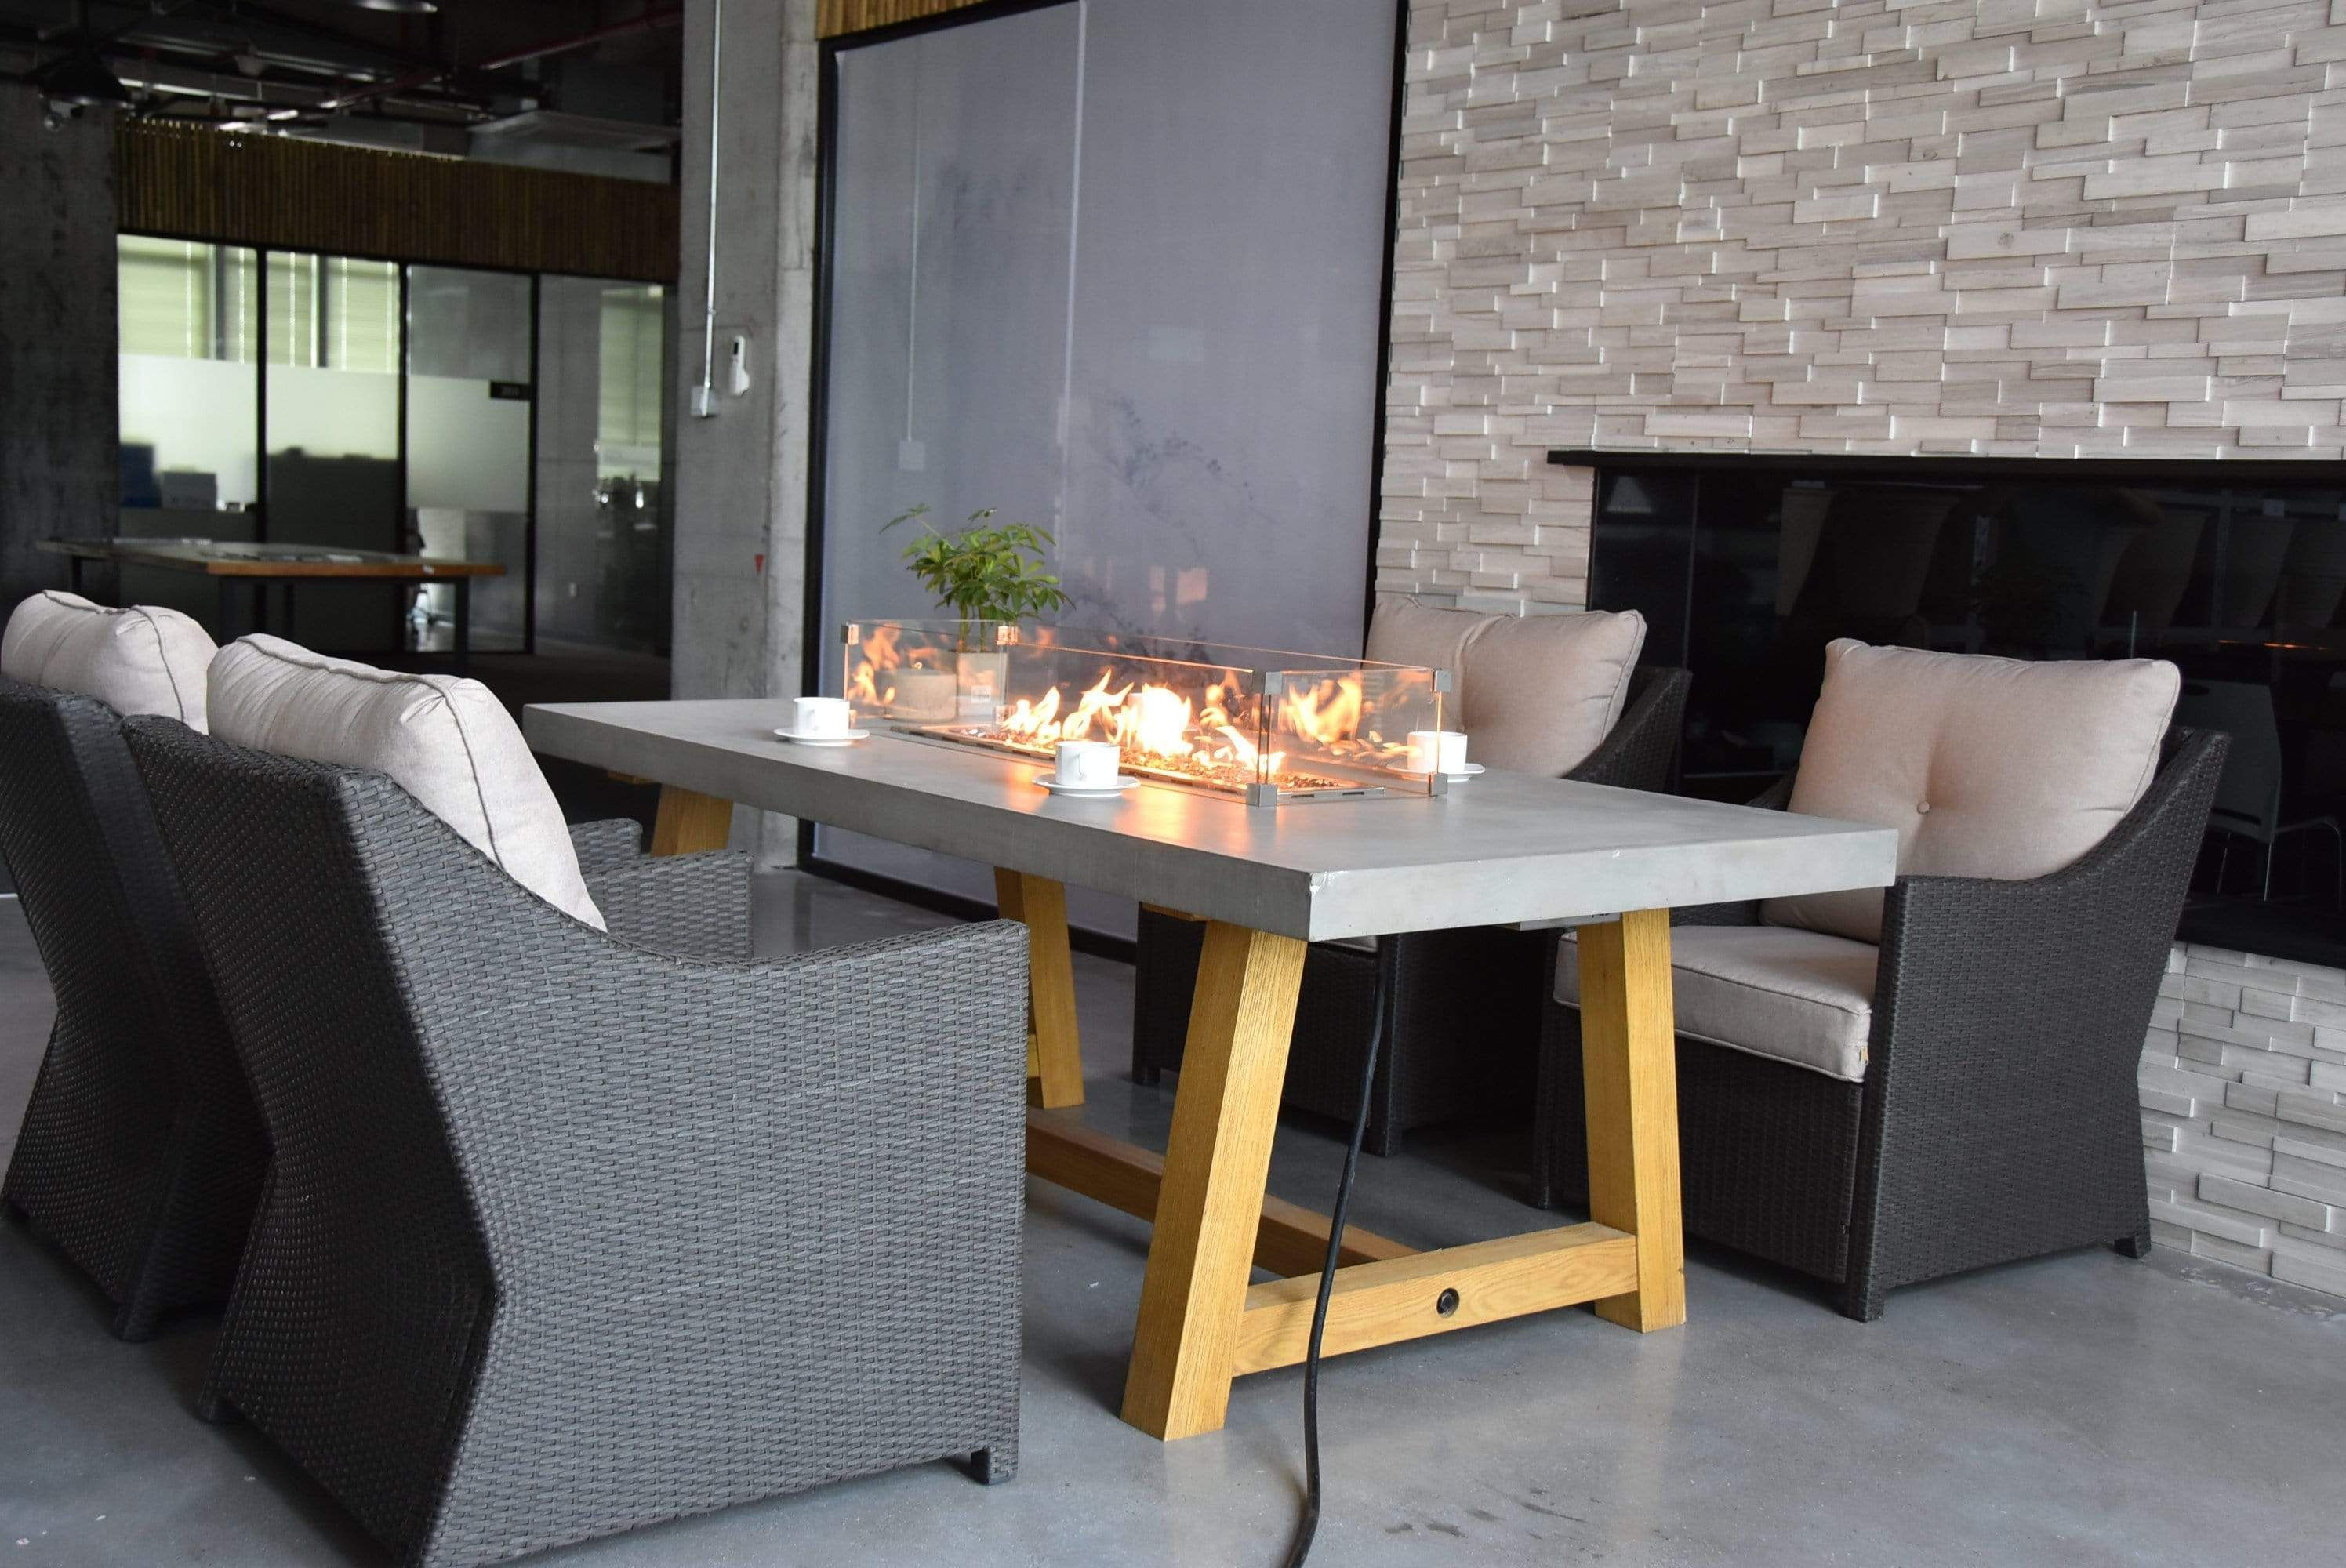 Workshop Fire Dining Table In 2021 Outdoor Fire Pit Table Fire Table Fire Pit Table Modern outdoor fire dining table